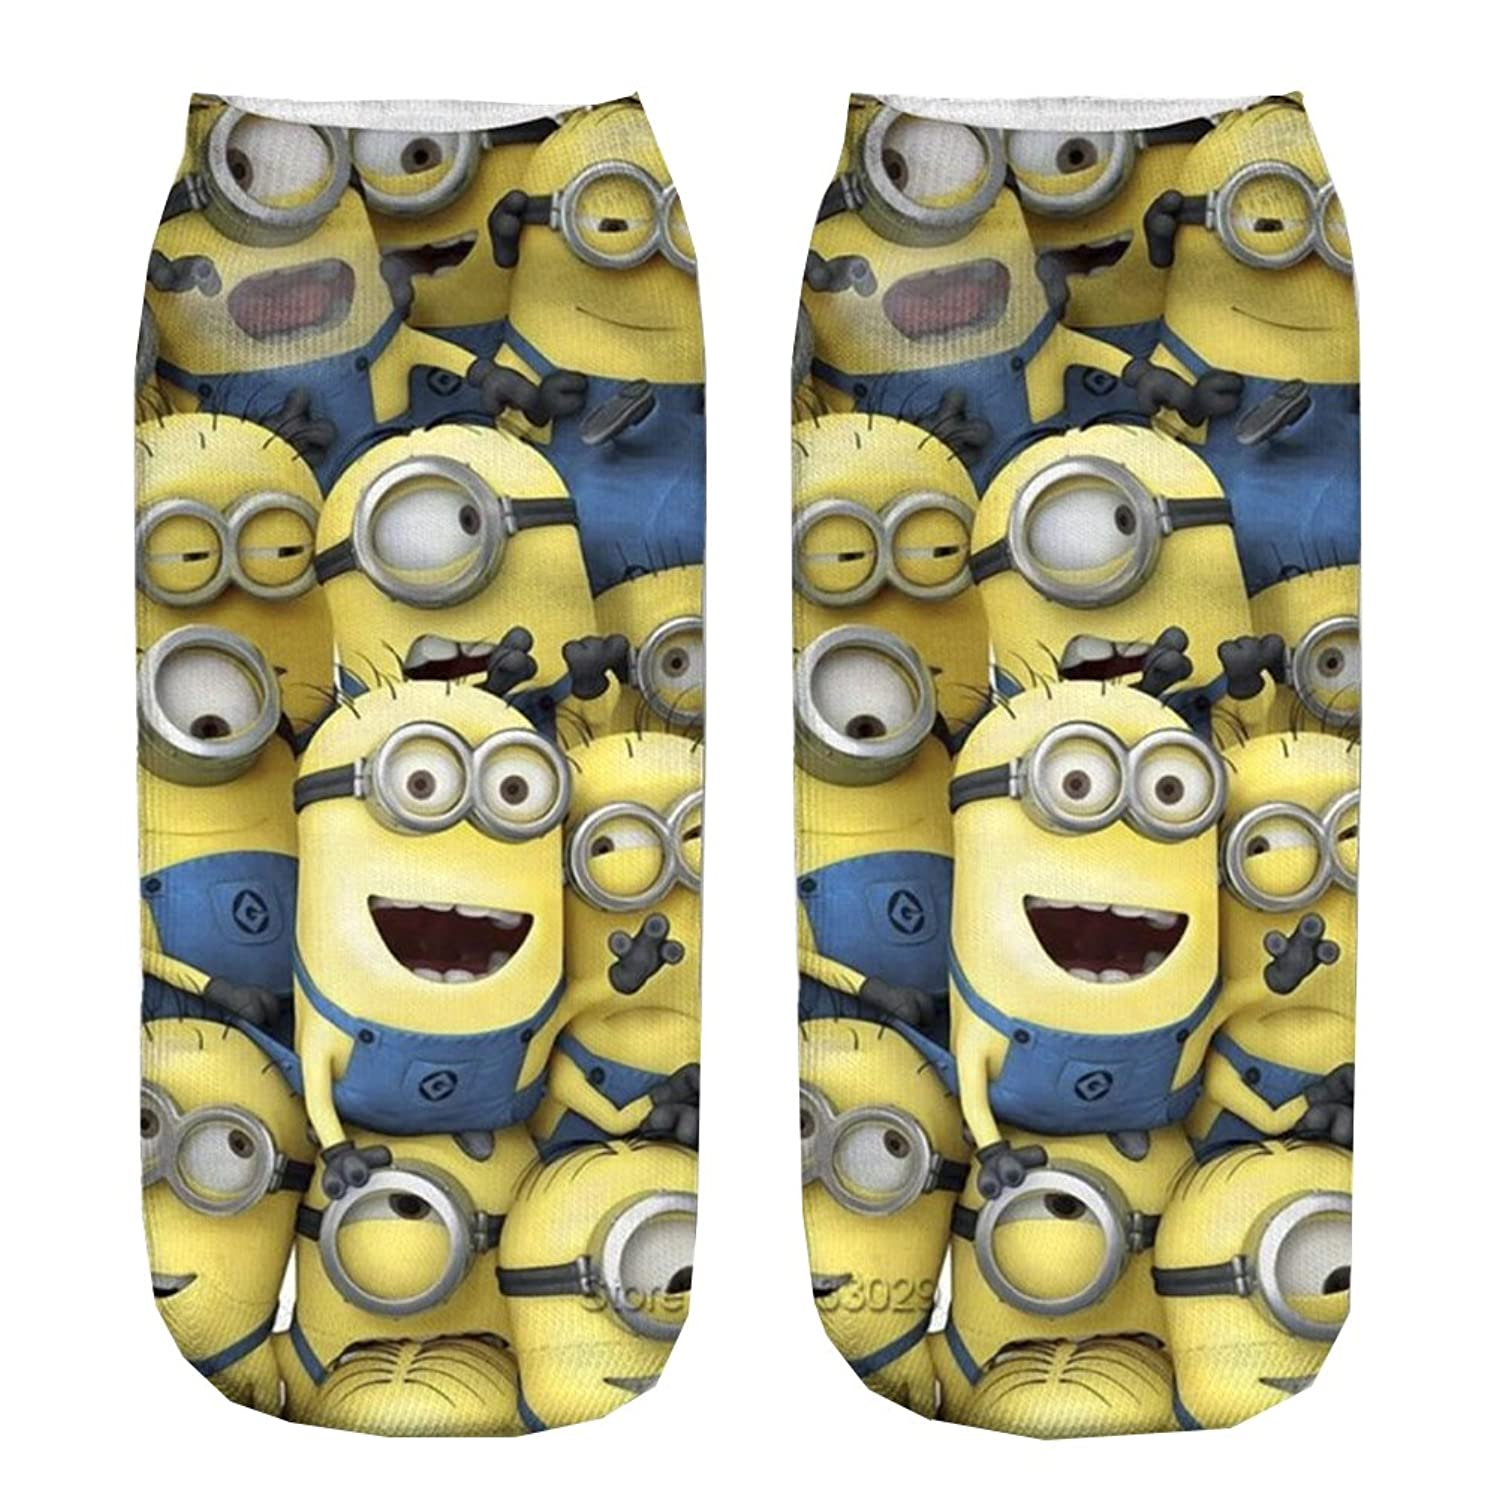 Minions Space 3D Printed Black Dog Animal Unisex Cute Low Cut Ankle Socks